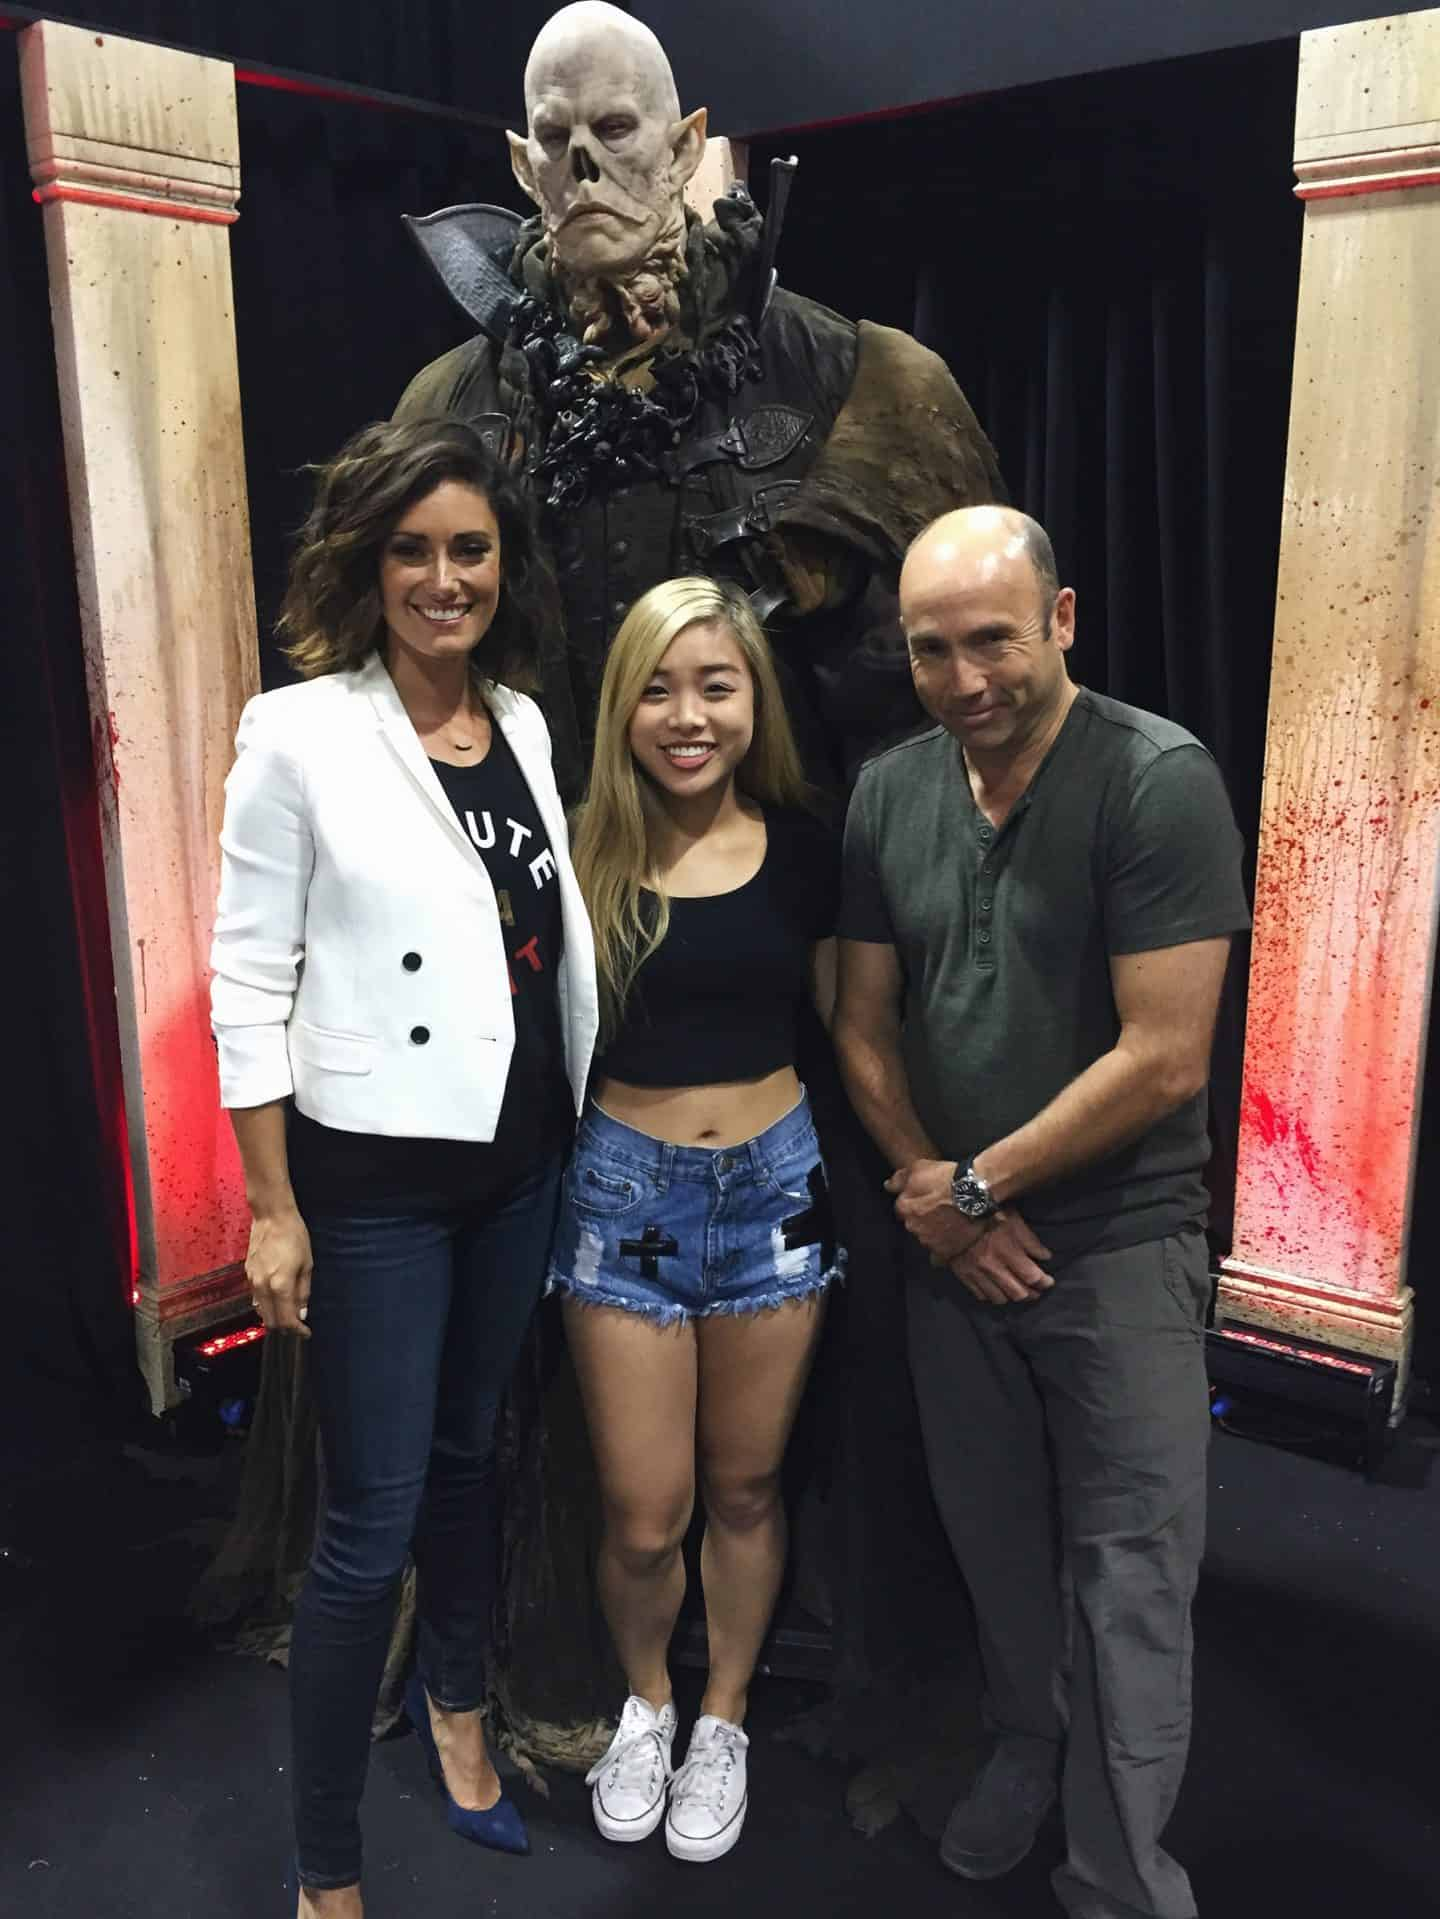 The Strain panel at Fan Expo Canada